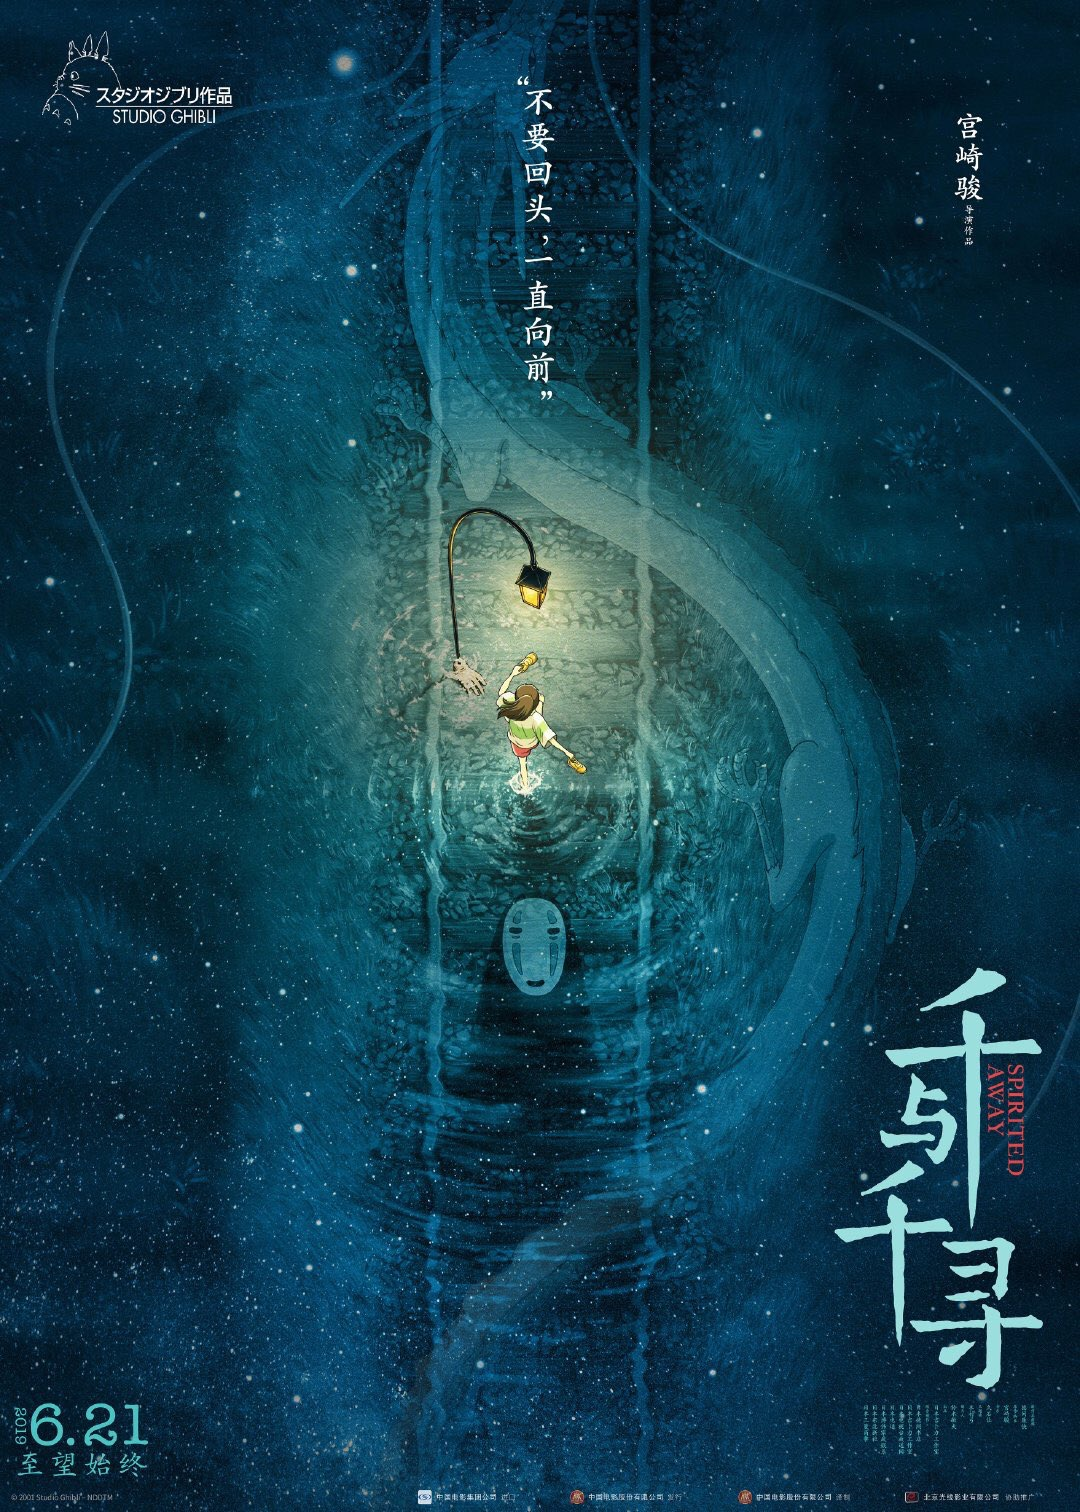 Posters For The Chinese Theatrical Release Of Spirited Away Spoon Tamago